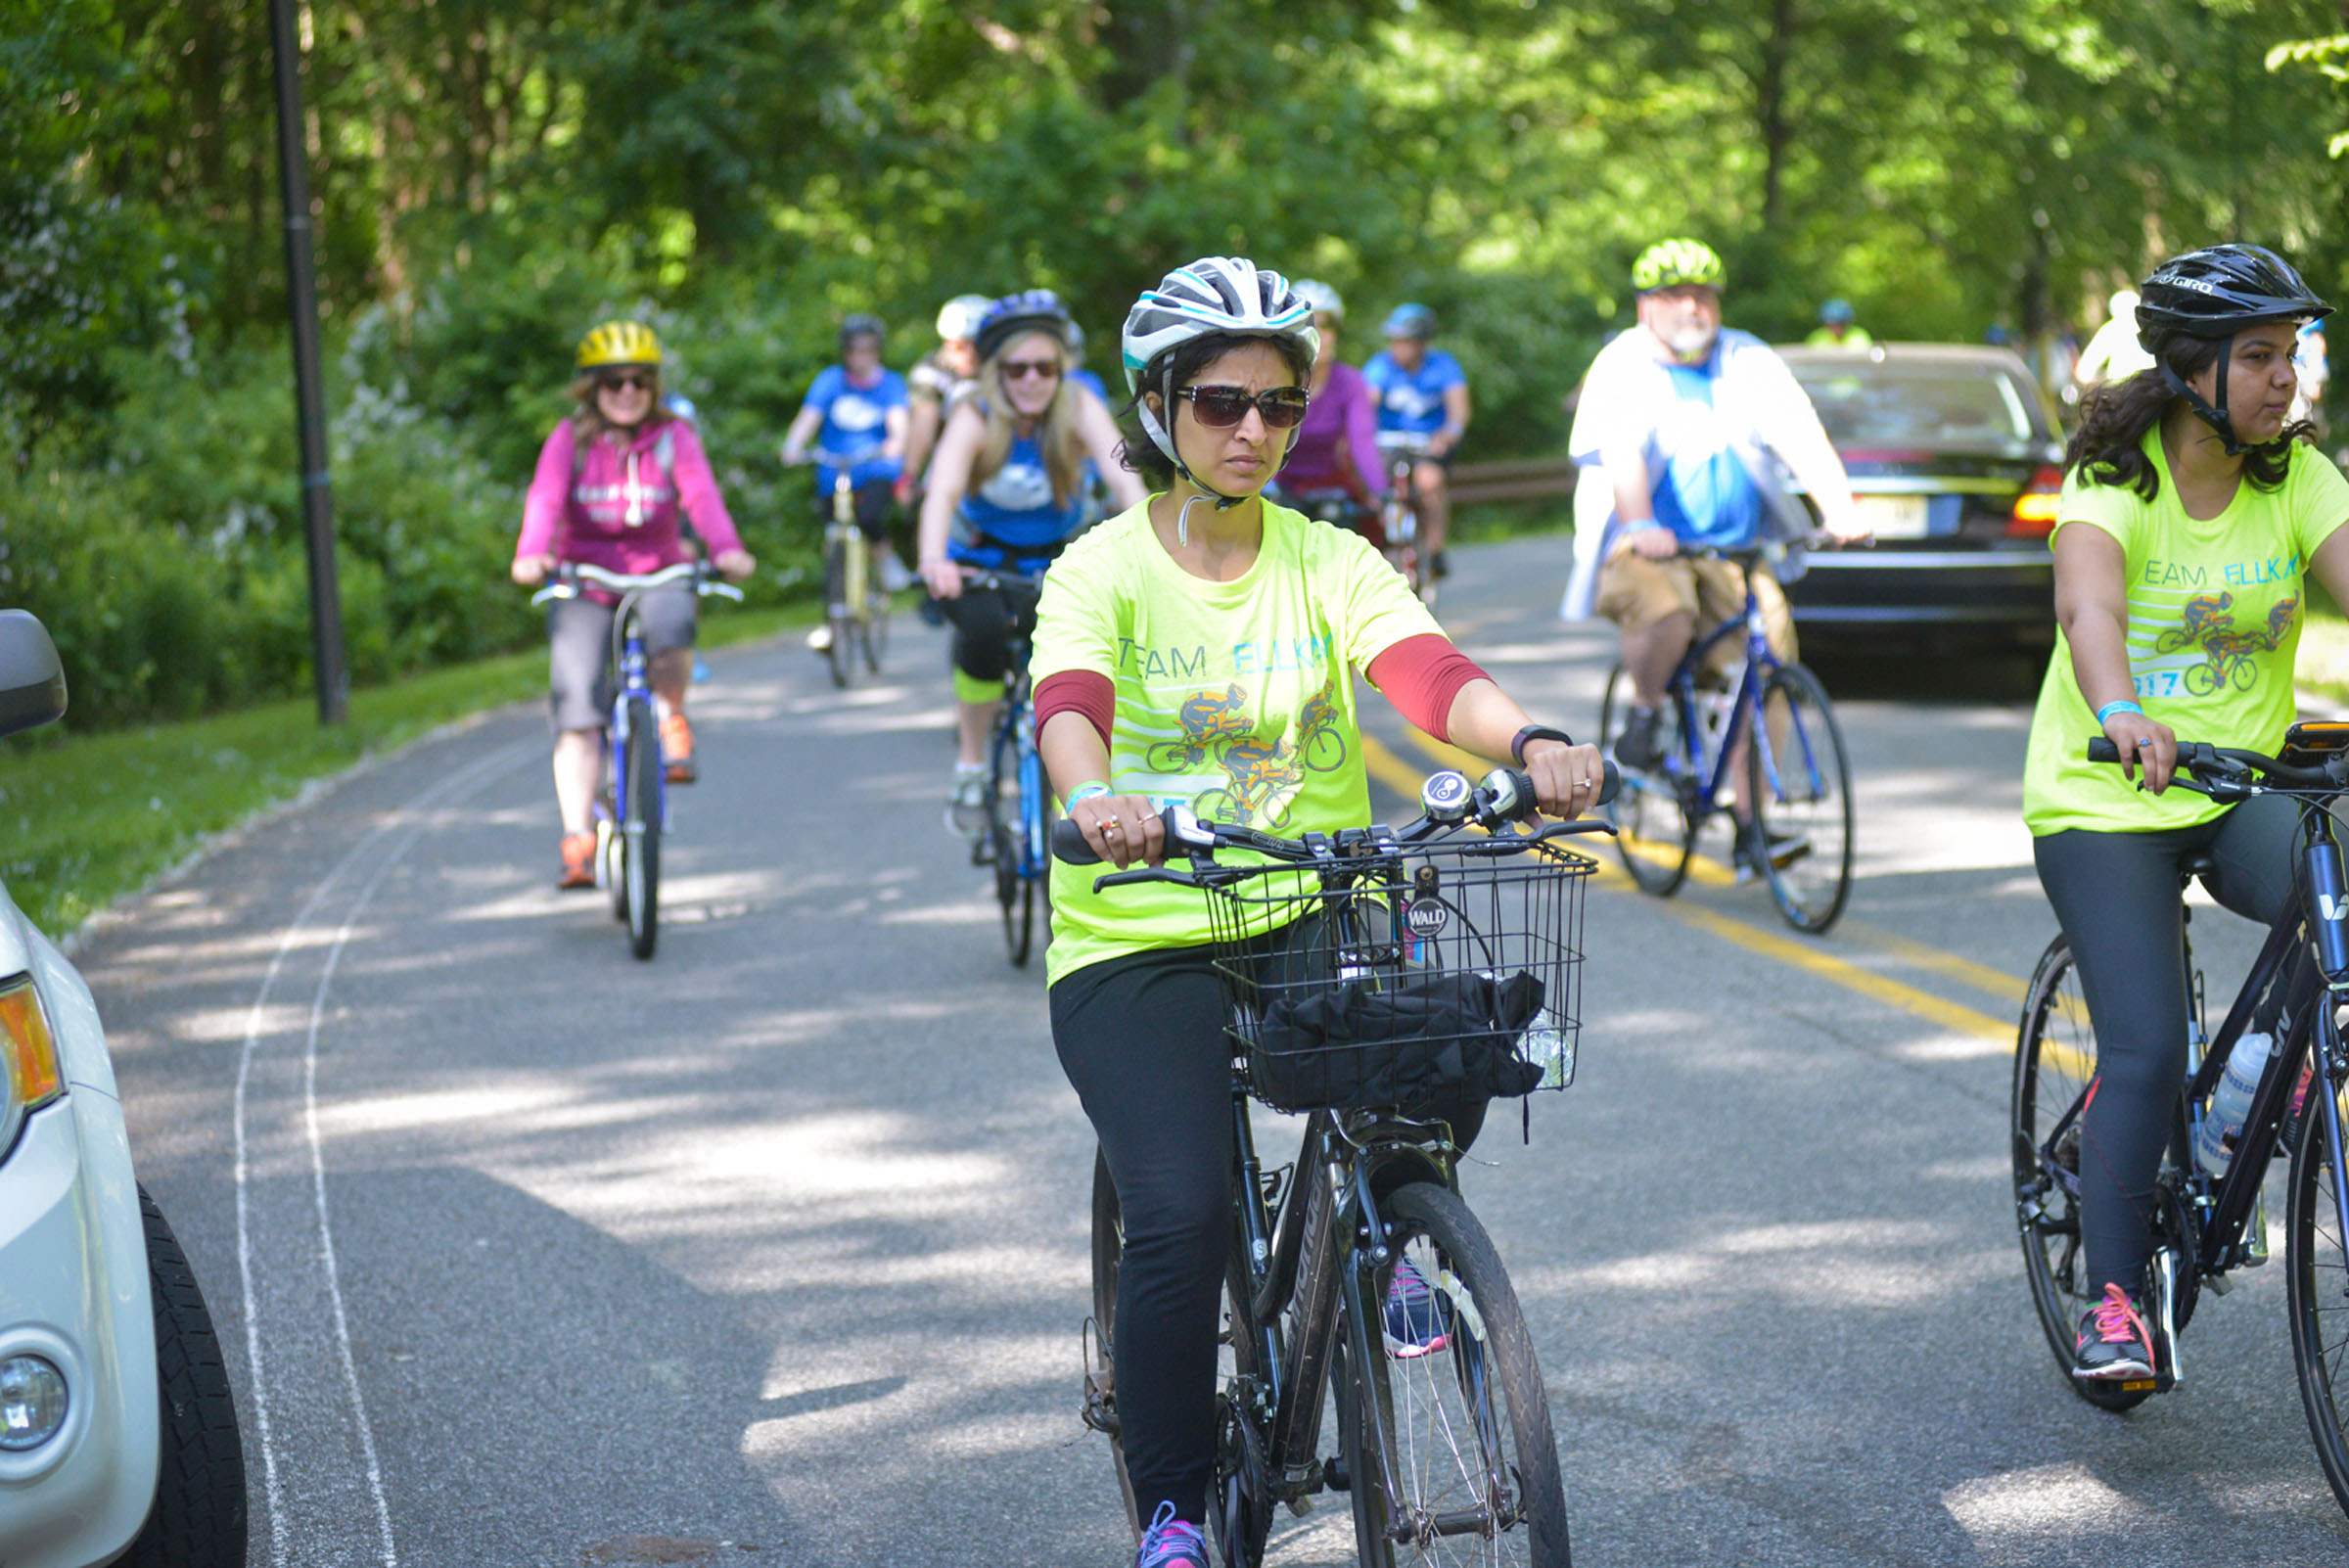 2017-06-04 GTD4A Charity Bike Ride - BCC - Paramus NJ-1943.jpg